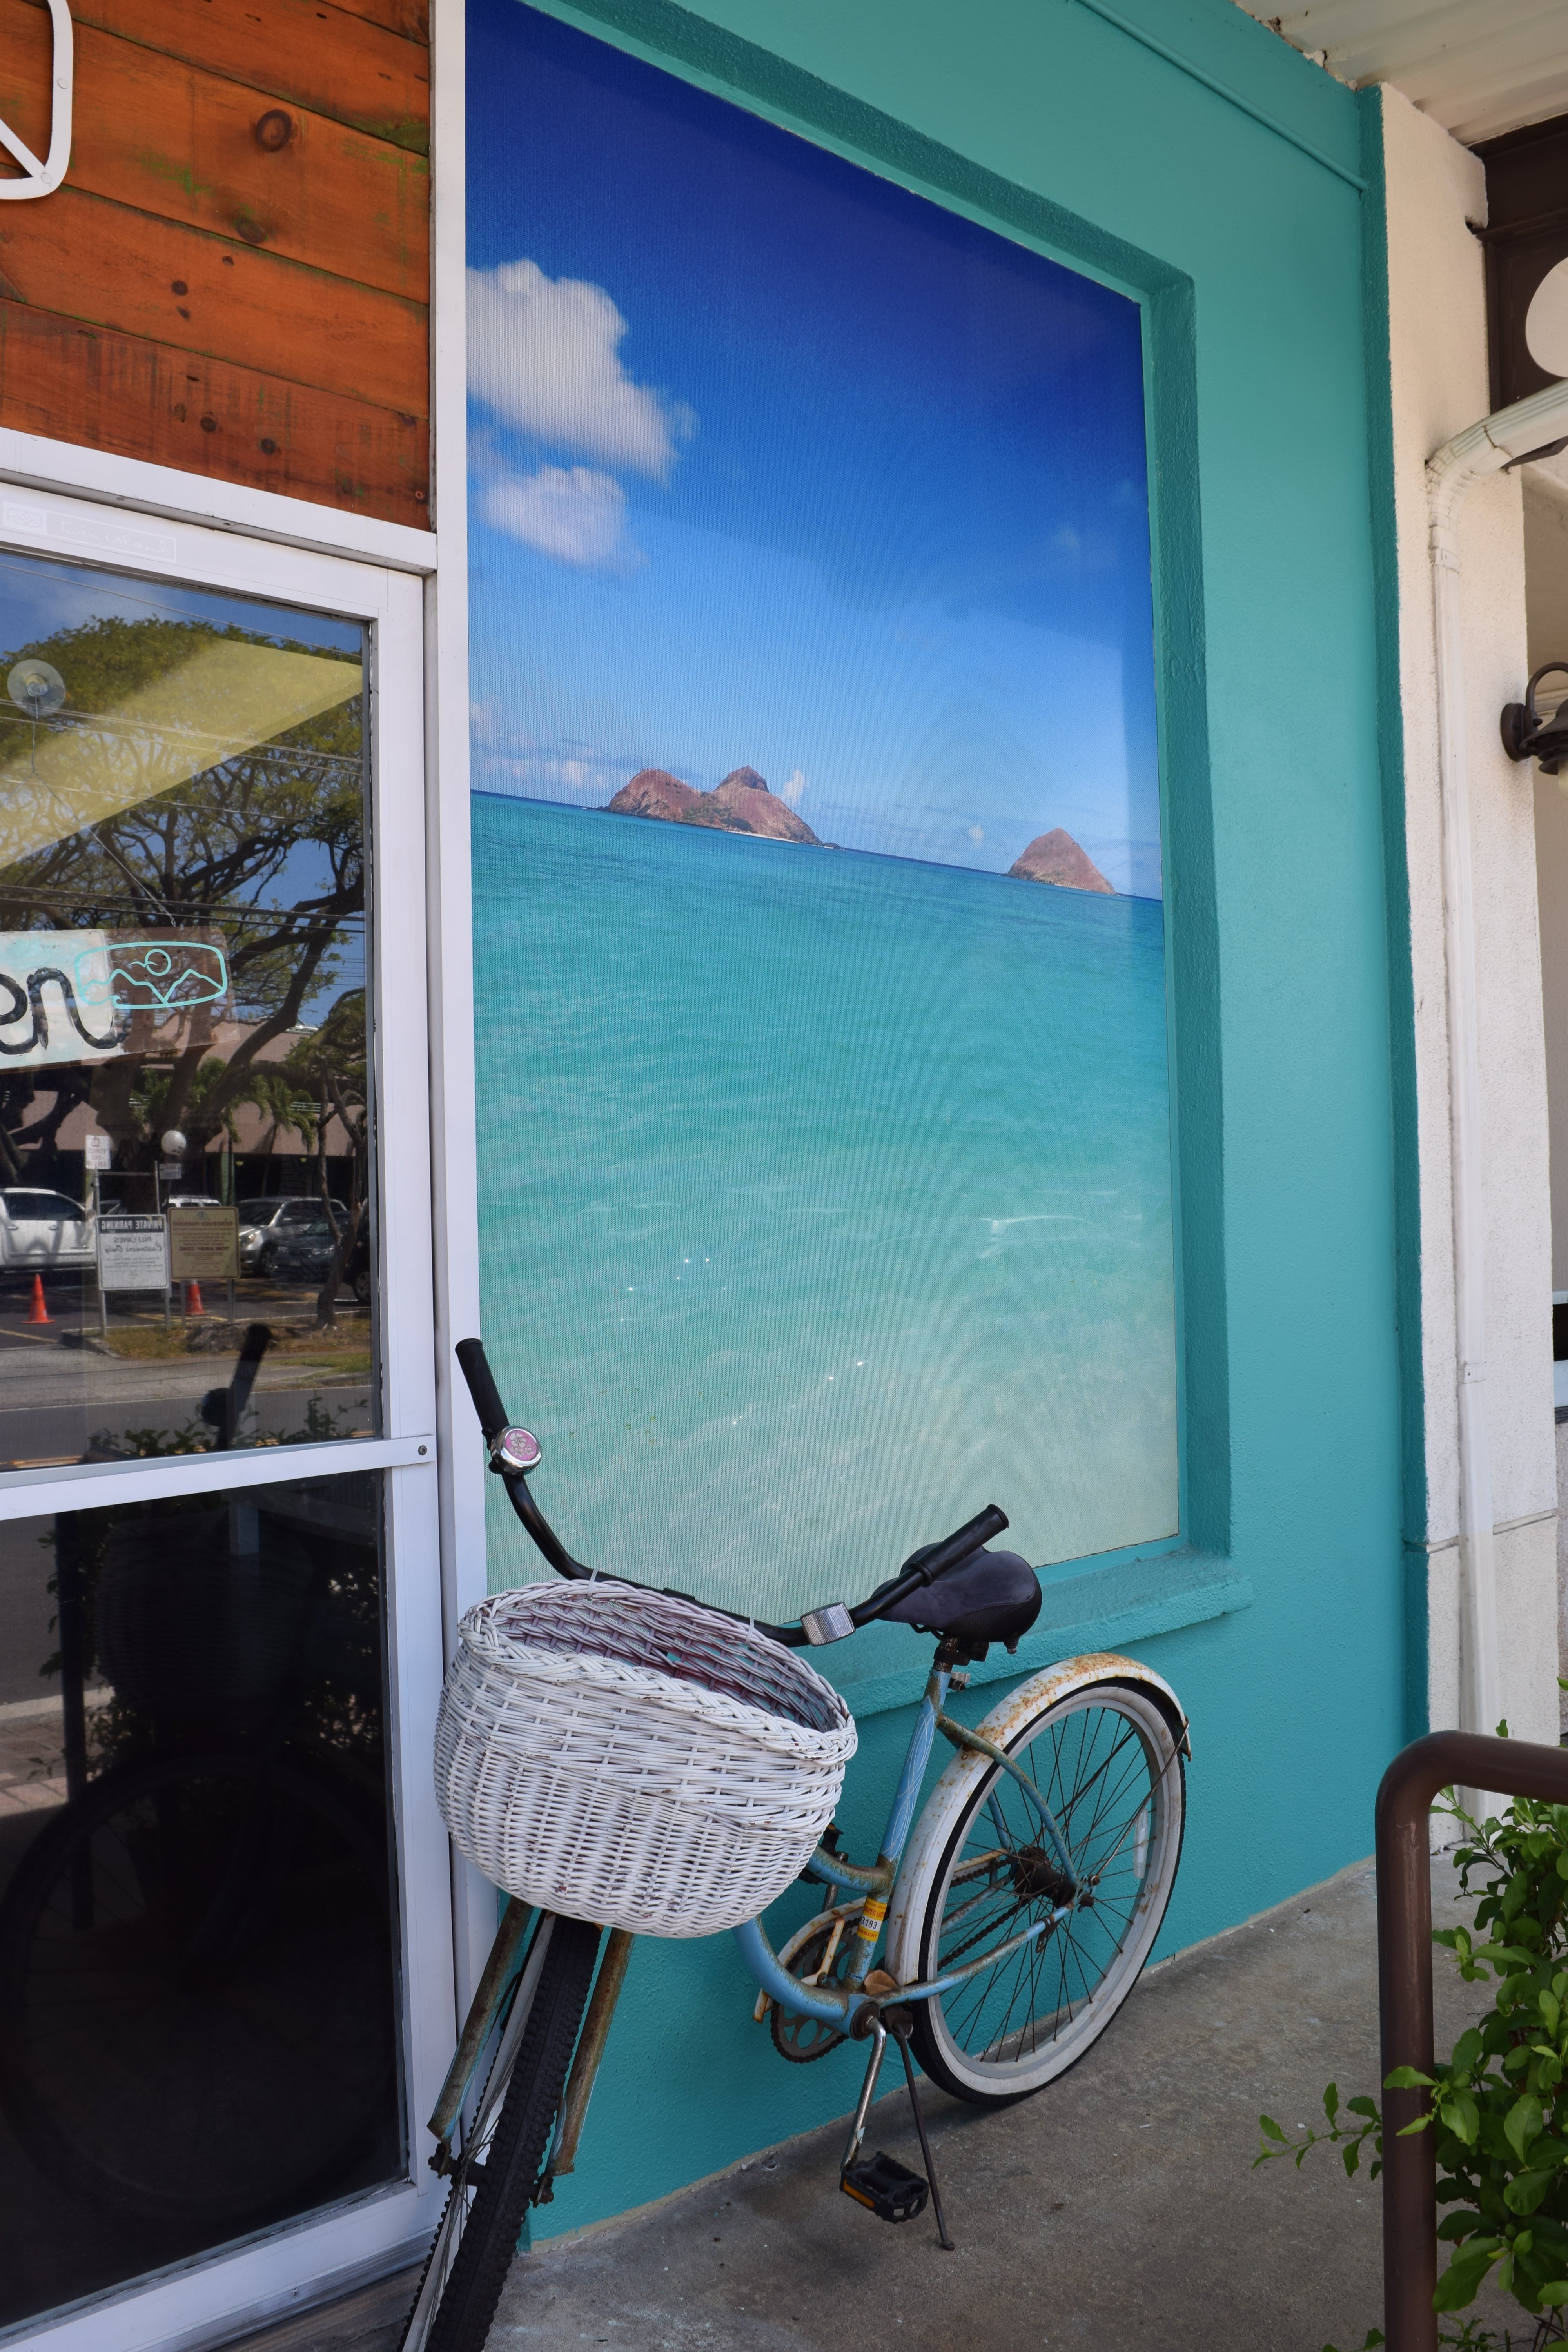 HOW TO SPEND A WEEKEND IN KAILUA | What to see, eat do and enjoy while on Oahu's east side in the beautiful beach town of Kailua! - Kailua Oahu Hawaii - Kailua Beach - Kailua Town - Kailua Weather - Kailua Restaurants - Kailua Shops - Weekend on Oahu - Oahu Travel Guide - Oahu Travel Blog - HomeAway Rentals In Kailua - #oahu #hawaii #travelblog #kailua